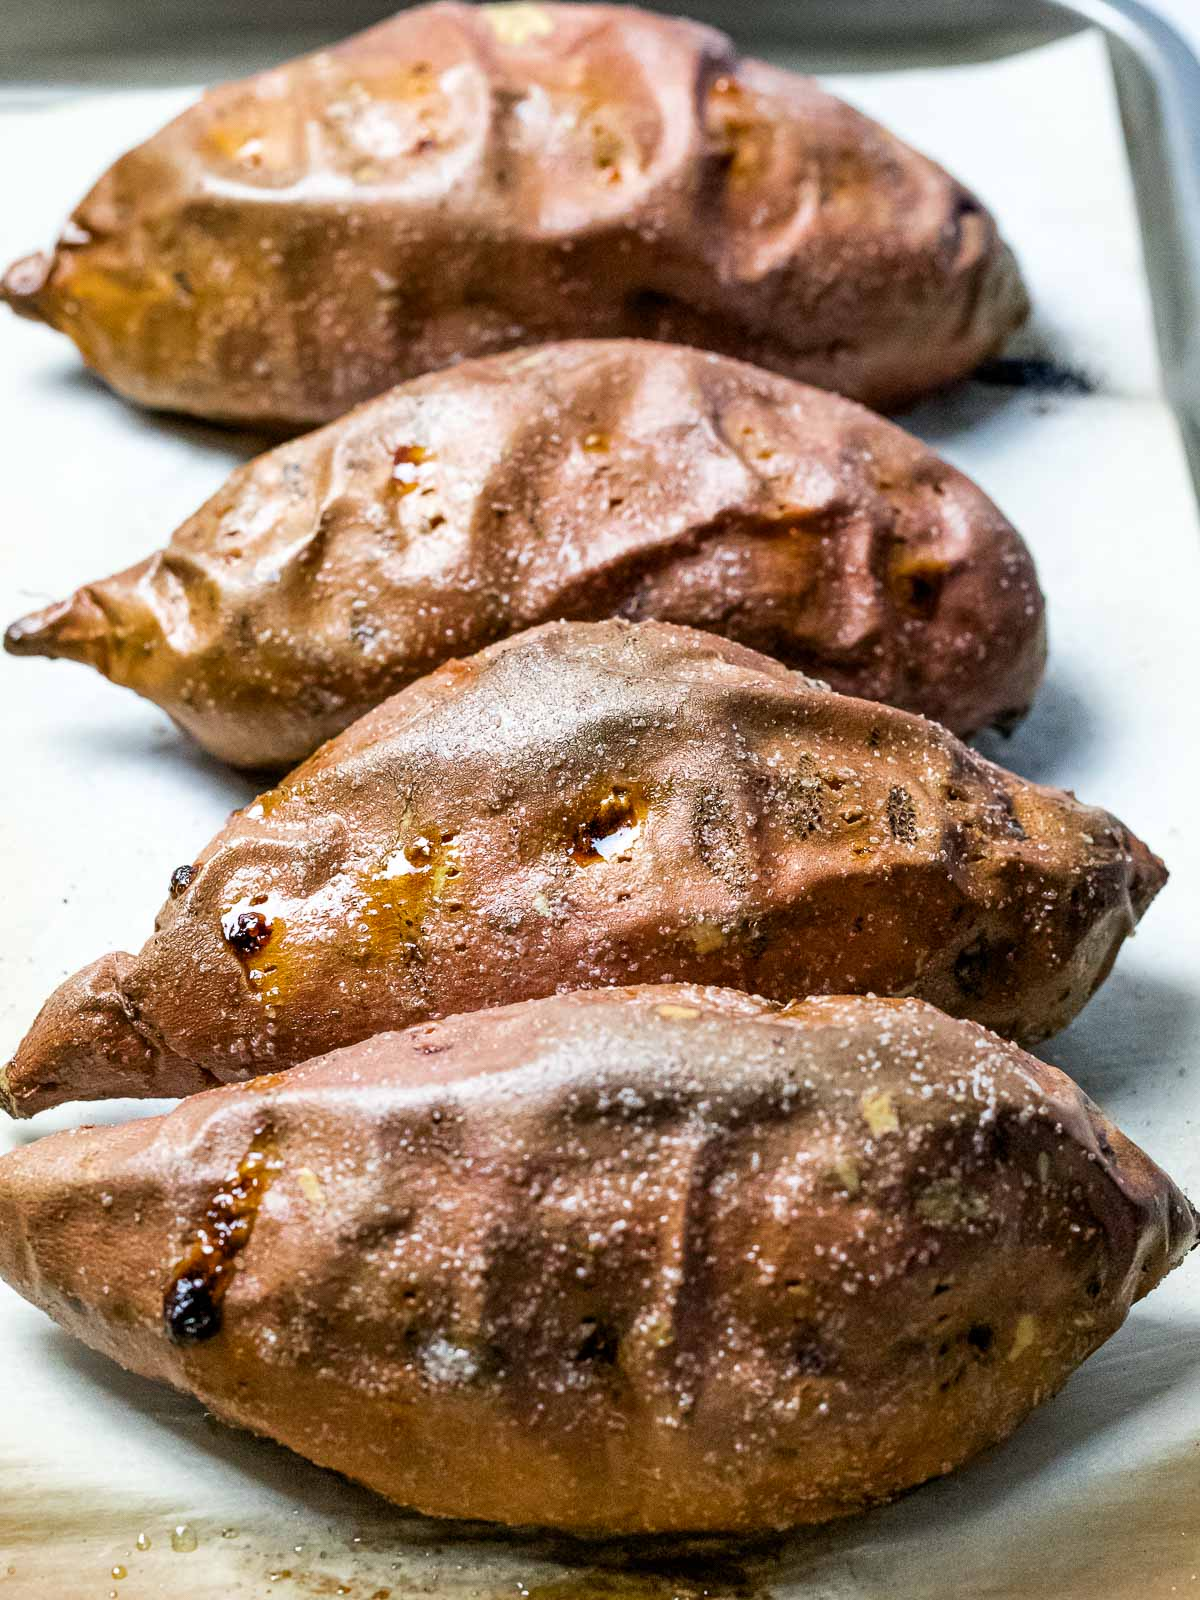 four perfect baked sweet potatoes with crispy, wrinkled skin on a baking pan showing caramelized syrup oozing from the sweet potatoes.